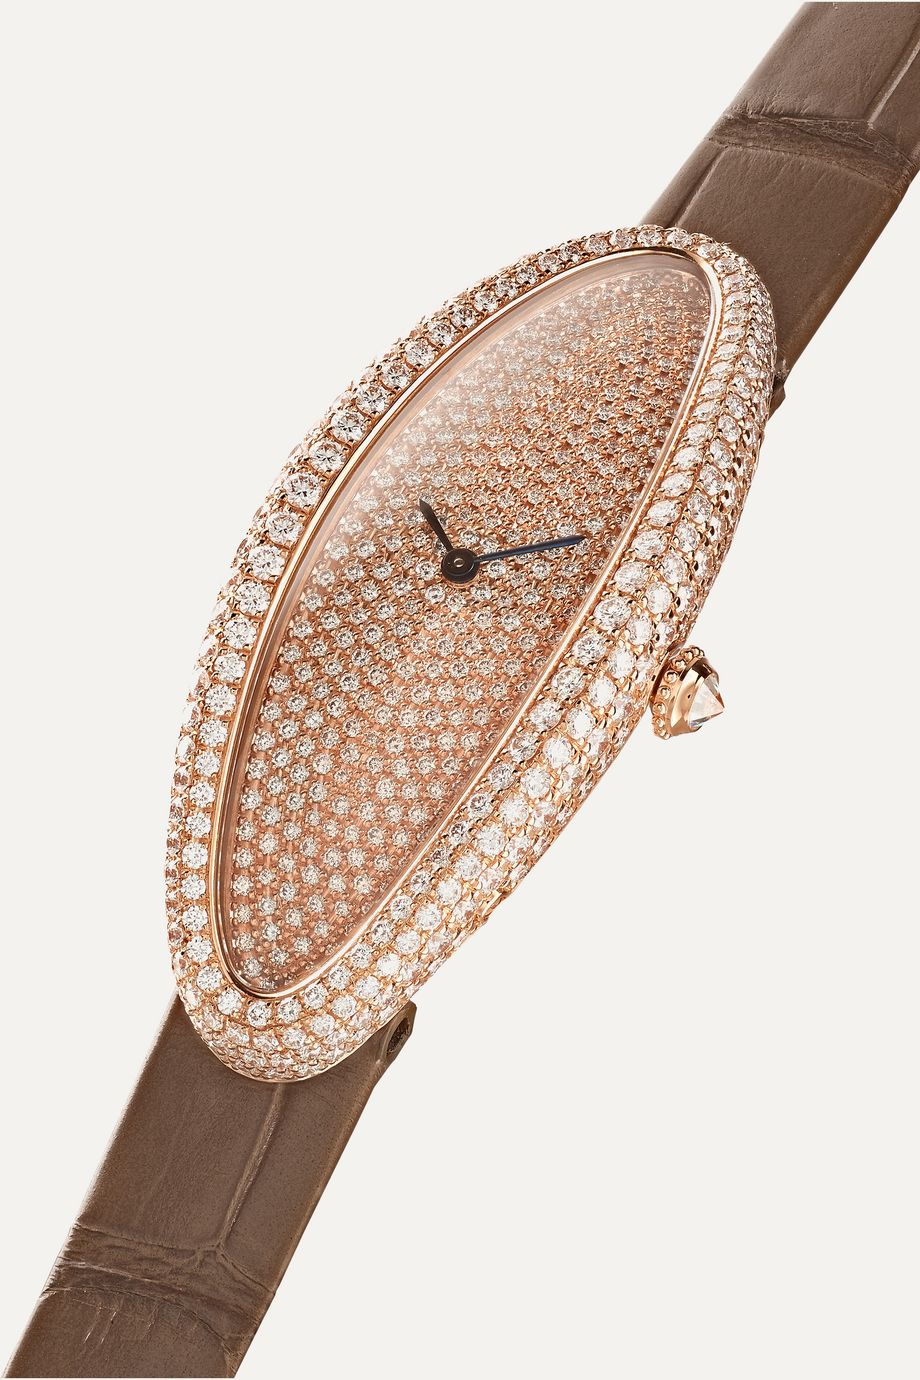 Cartier Montre en or rose 18 carats et diamants à bracelet en alligator Baignoire Allongée Medium 21 mm